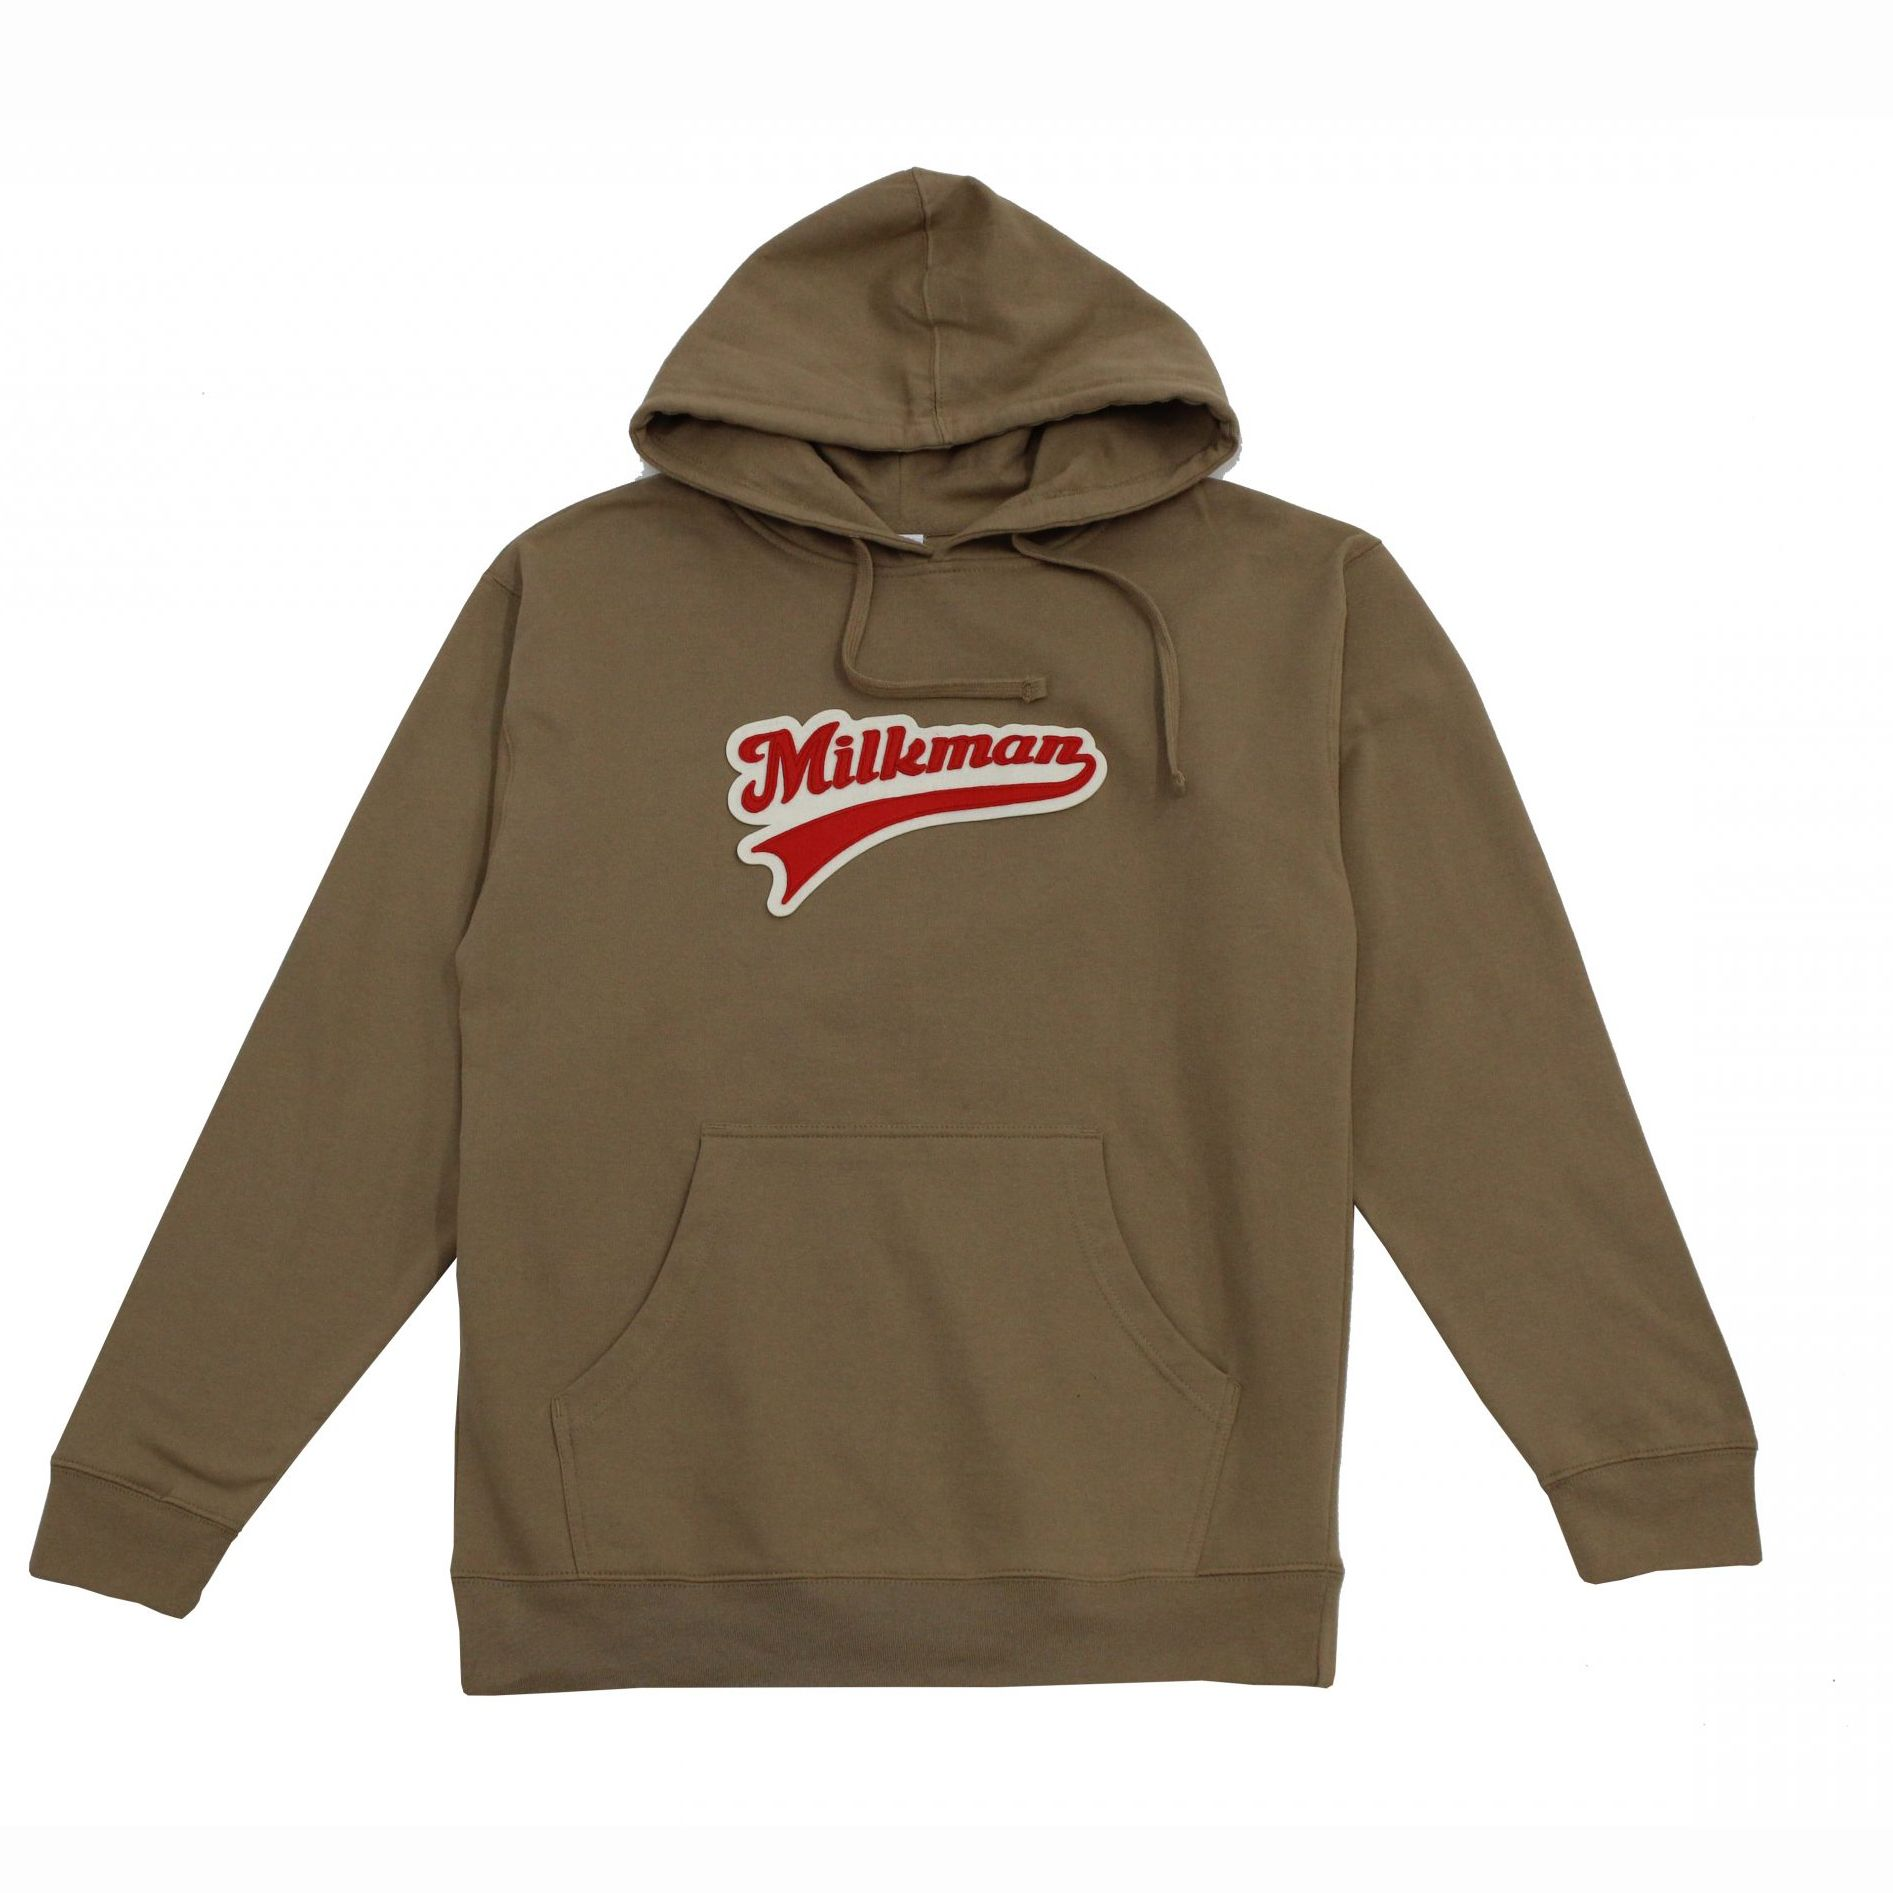 SoYou Clothing Ball Park Hoodie in Brown